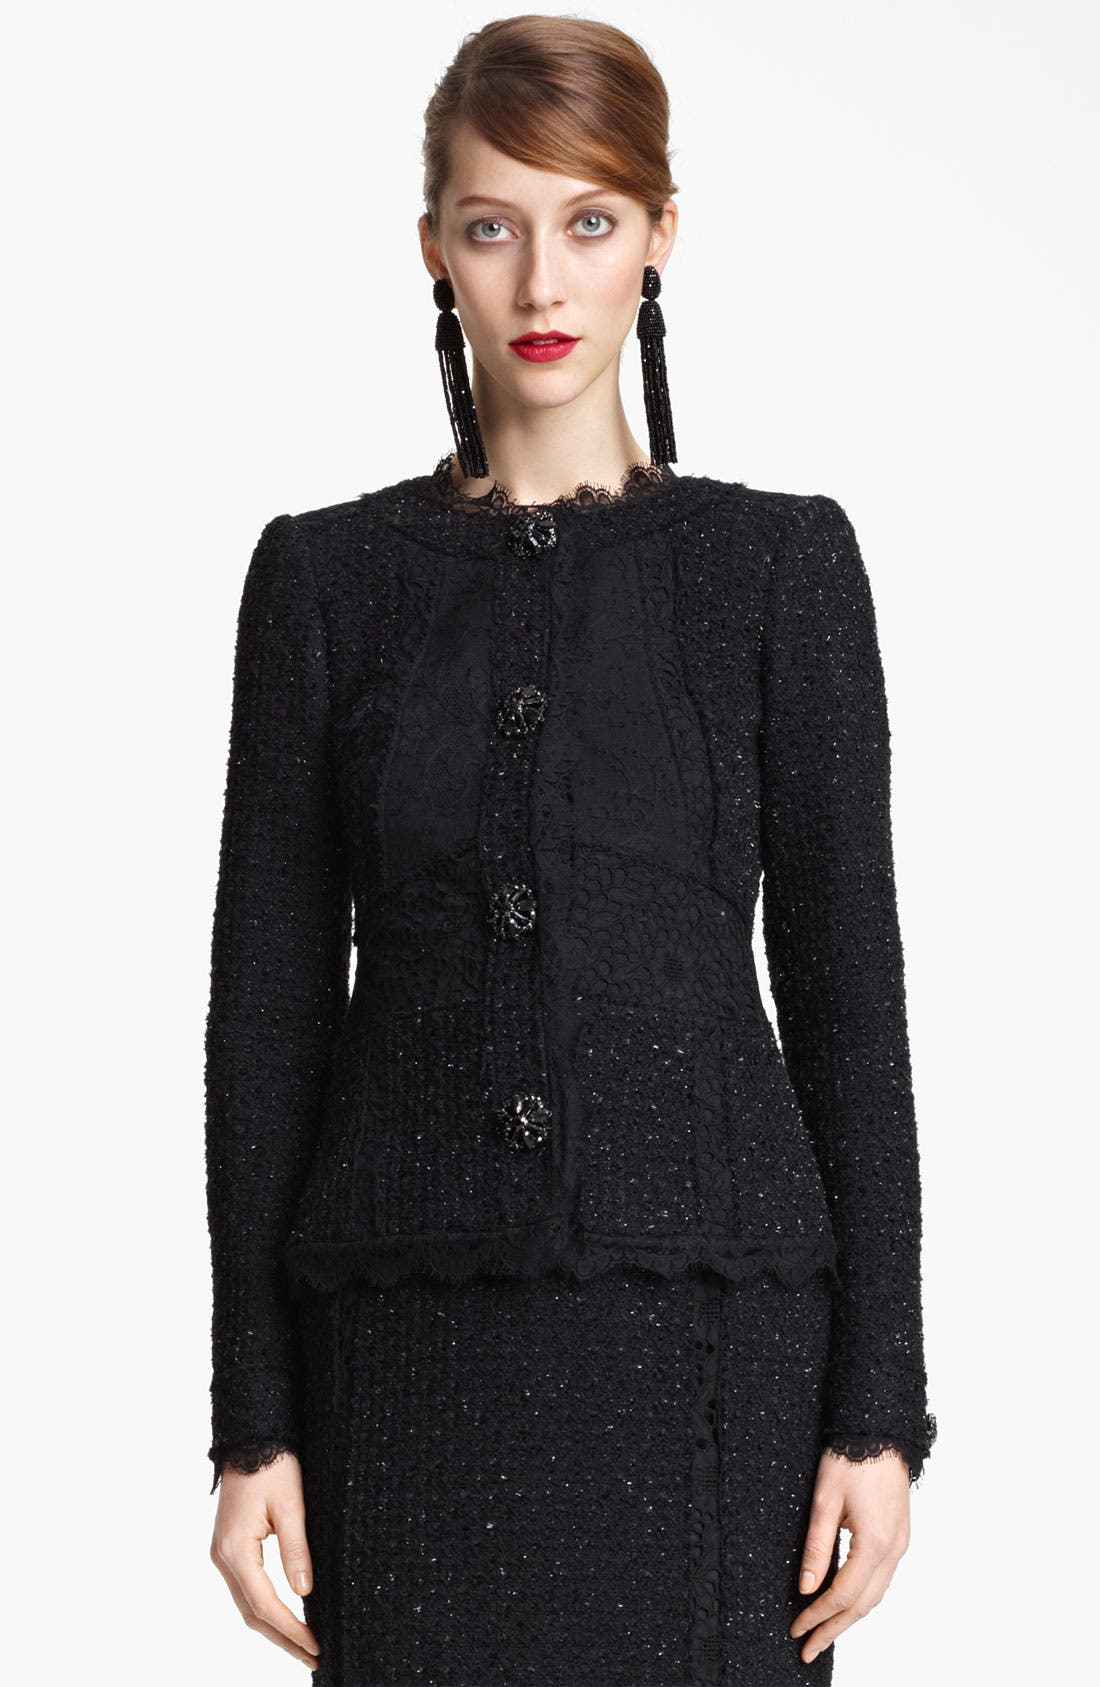 Alternate Image 1 Selected - Oscar de la Renta Lace & Tweed Jacket